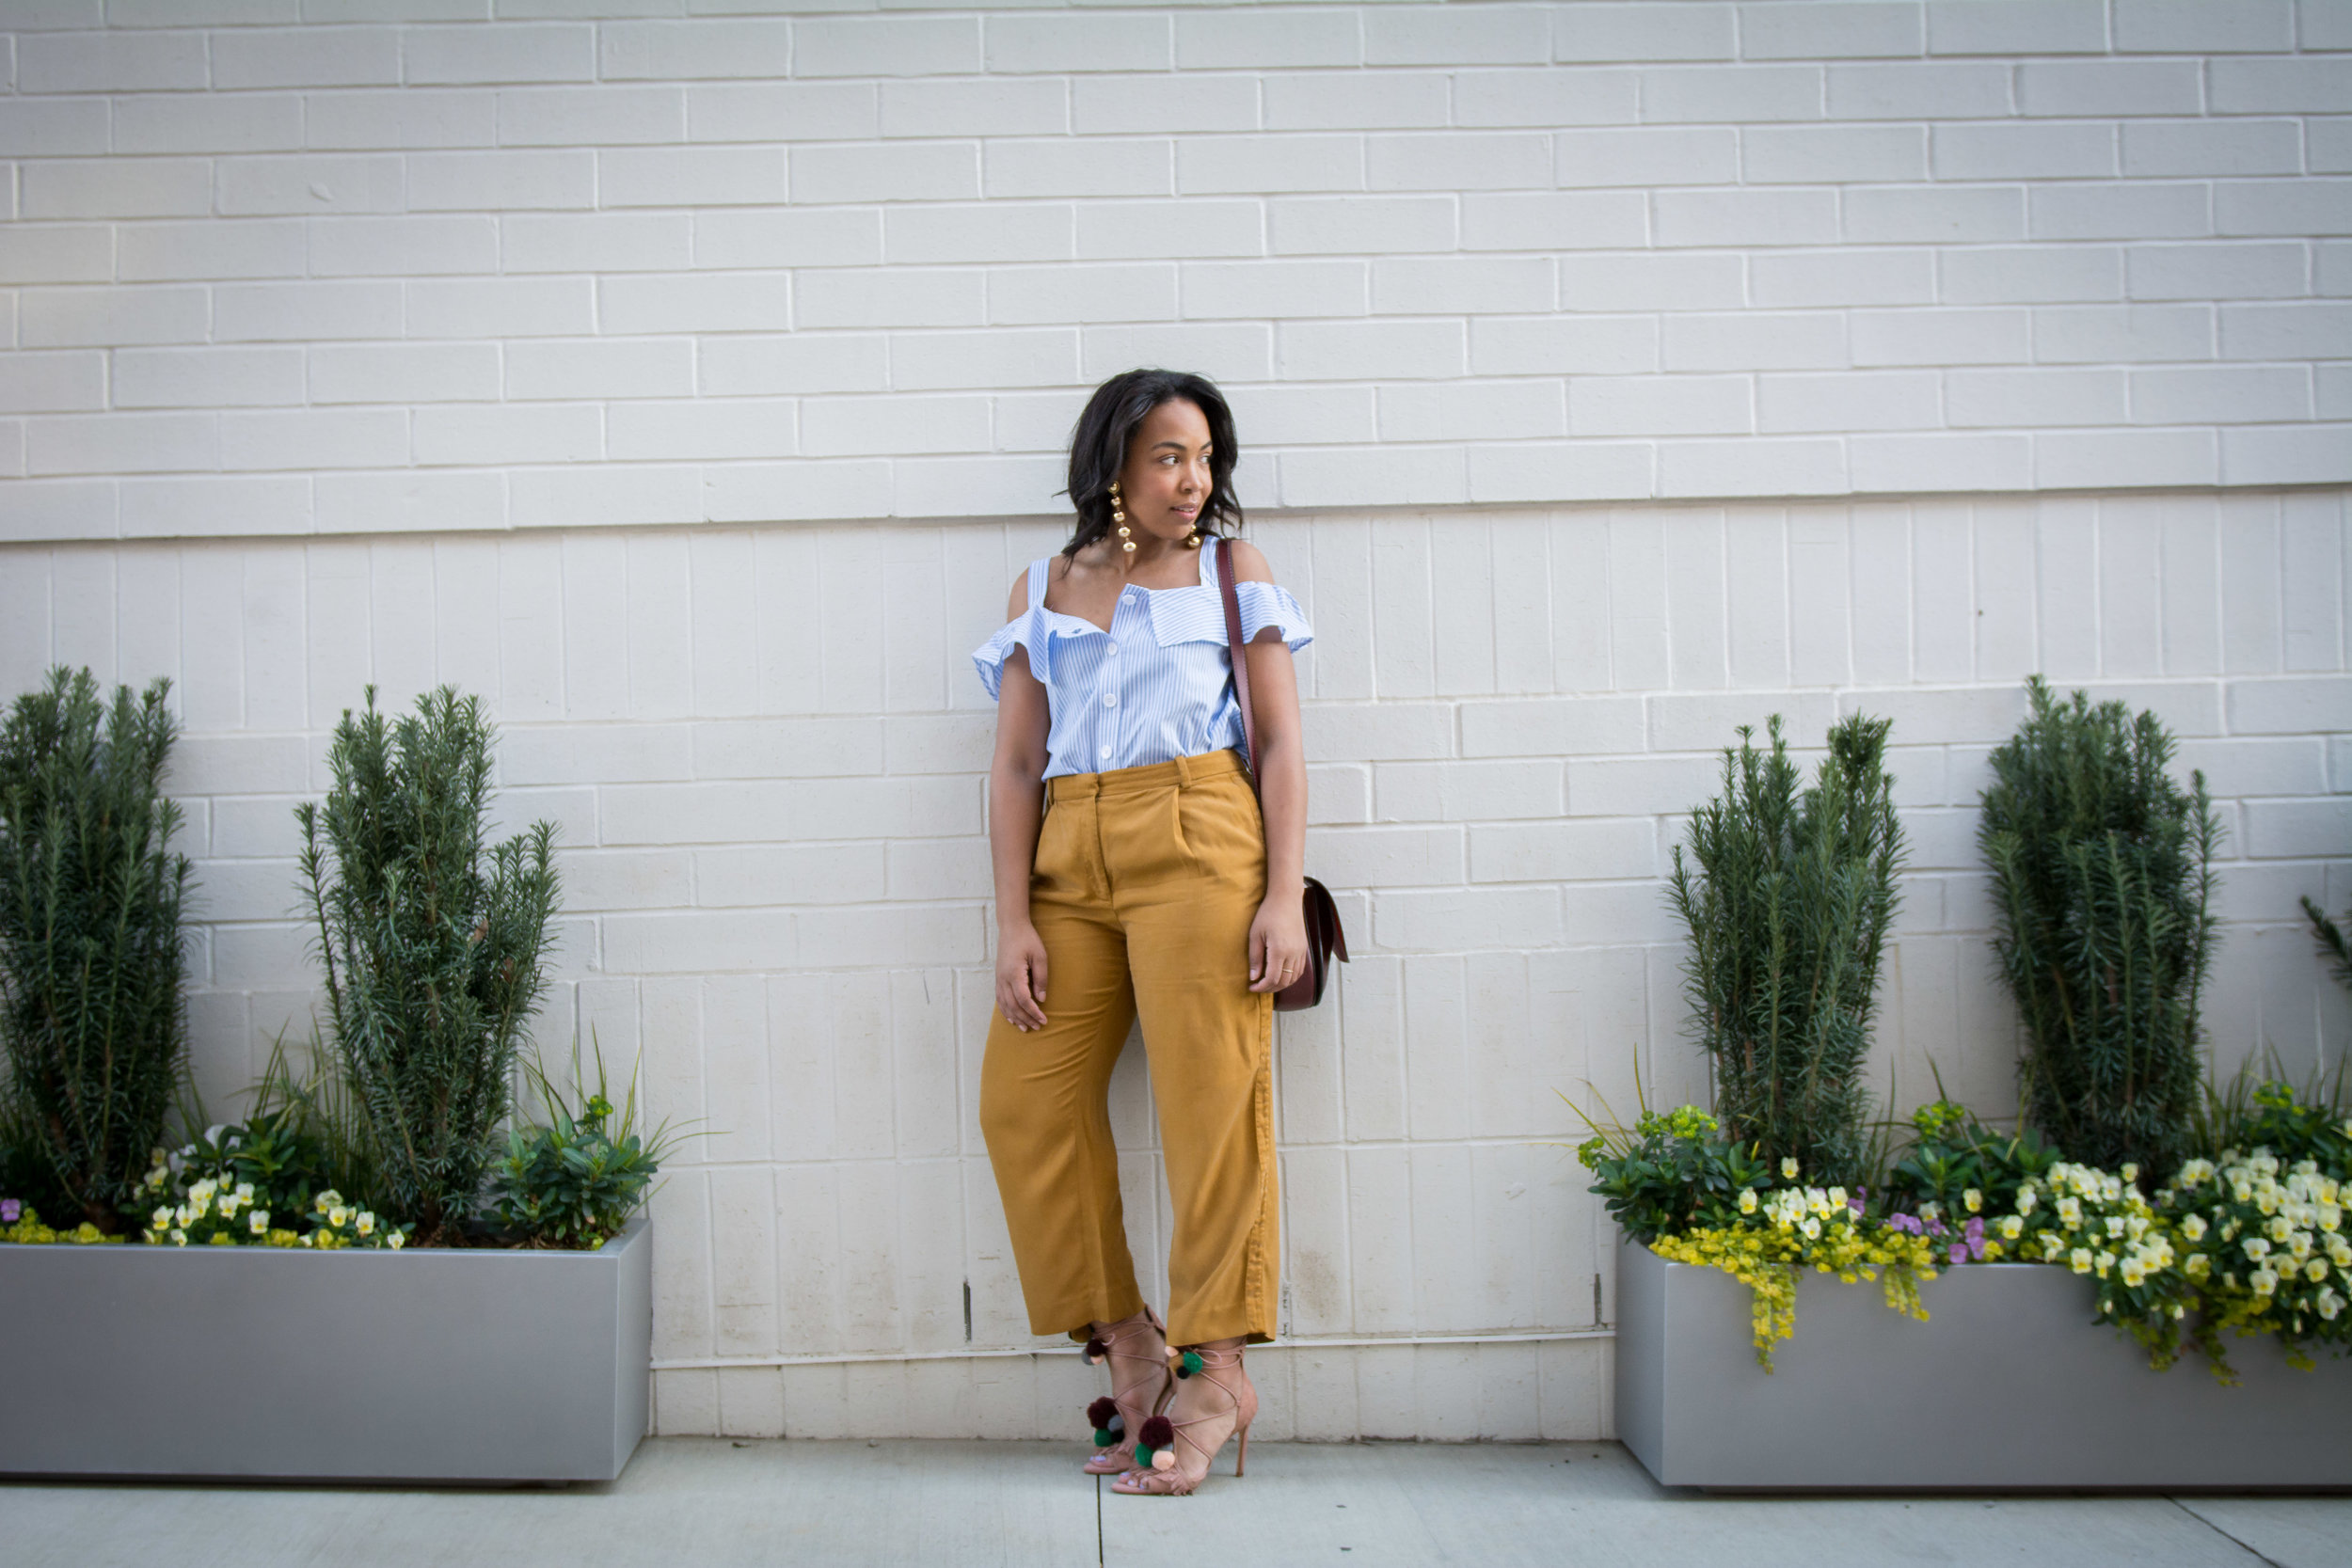 belk-crown-and-ivy-robinson-style-spring-fashion.JPG